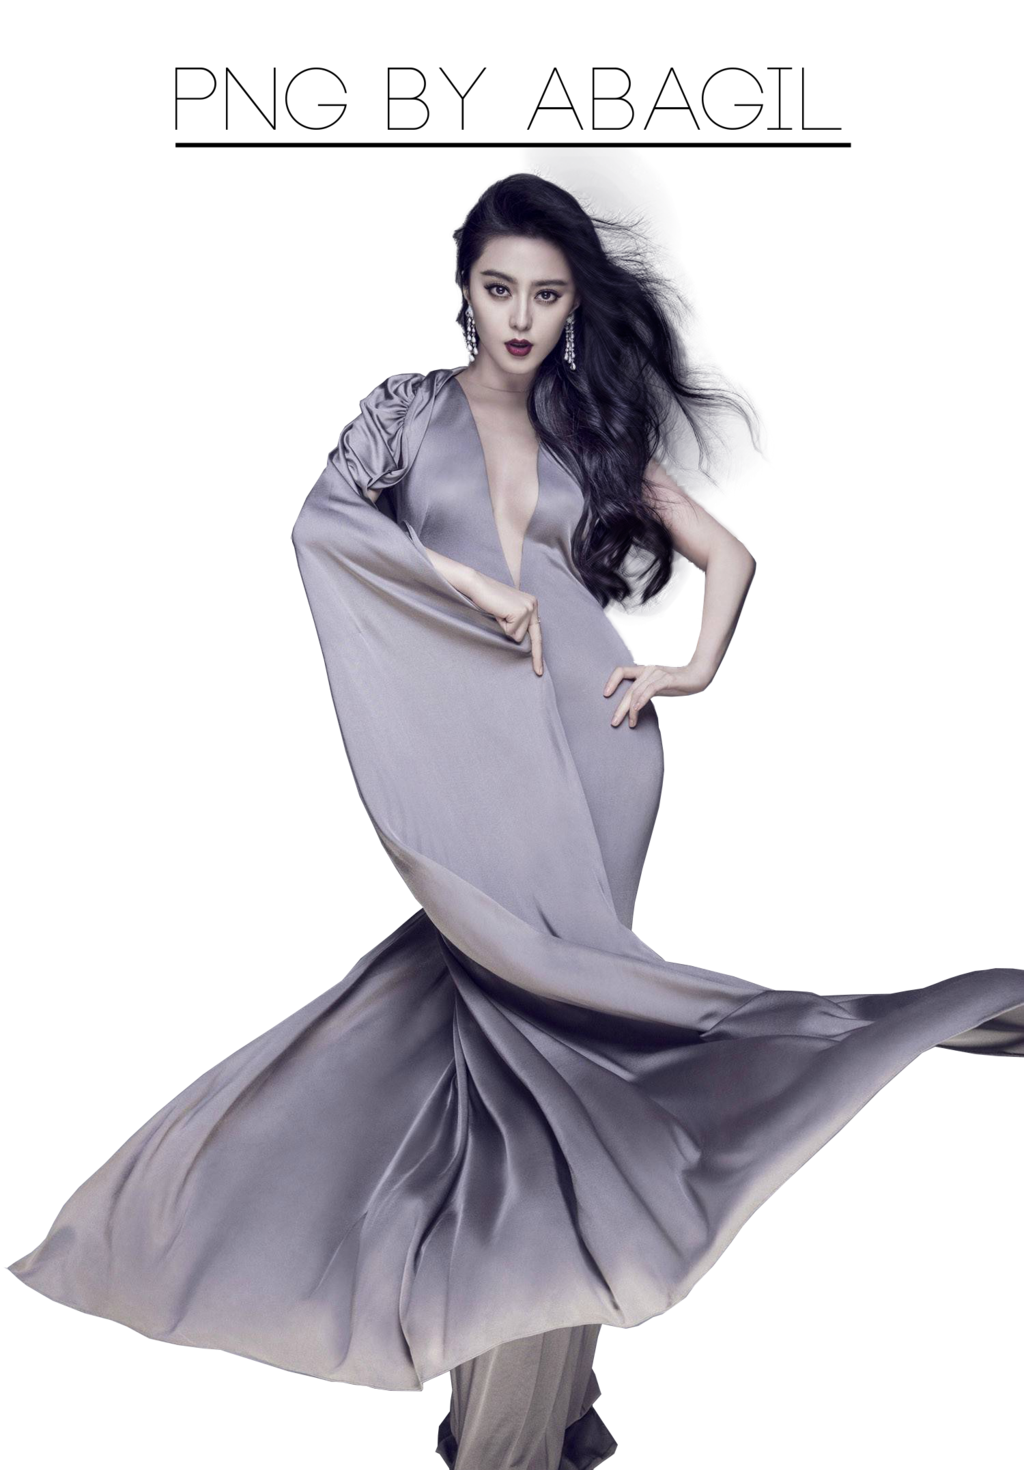 Fan Bingbing Transparent Background - Fan Bingbing PNG